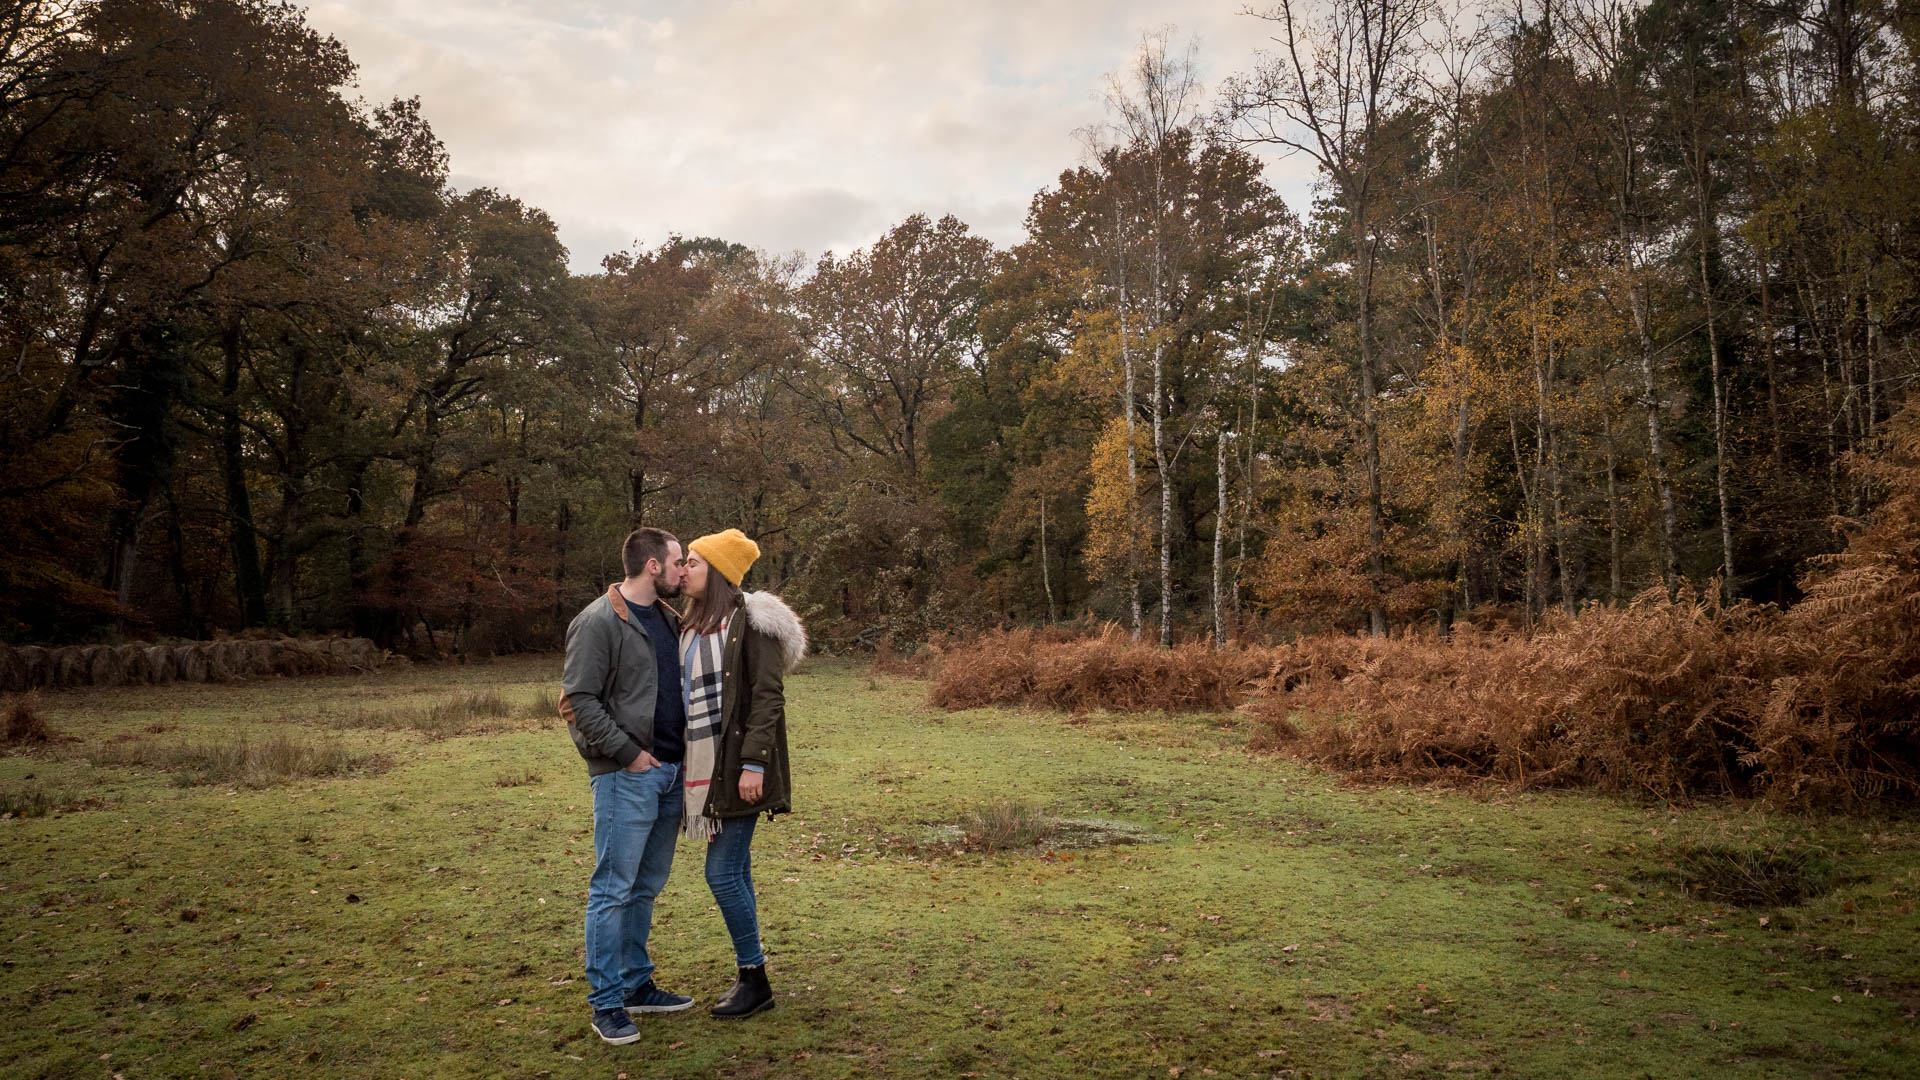 Couple kiss in woodland clearing, with a beautiful autumn sky in the background